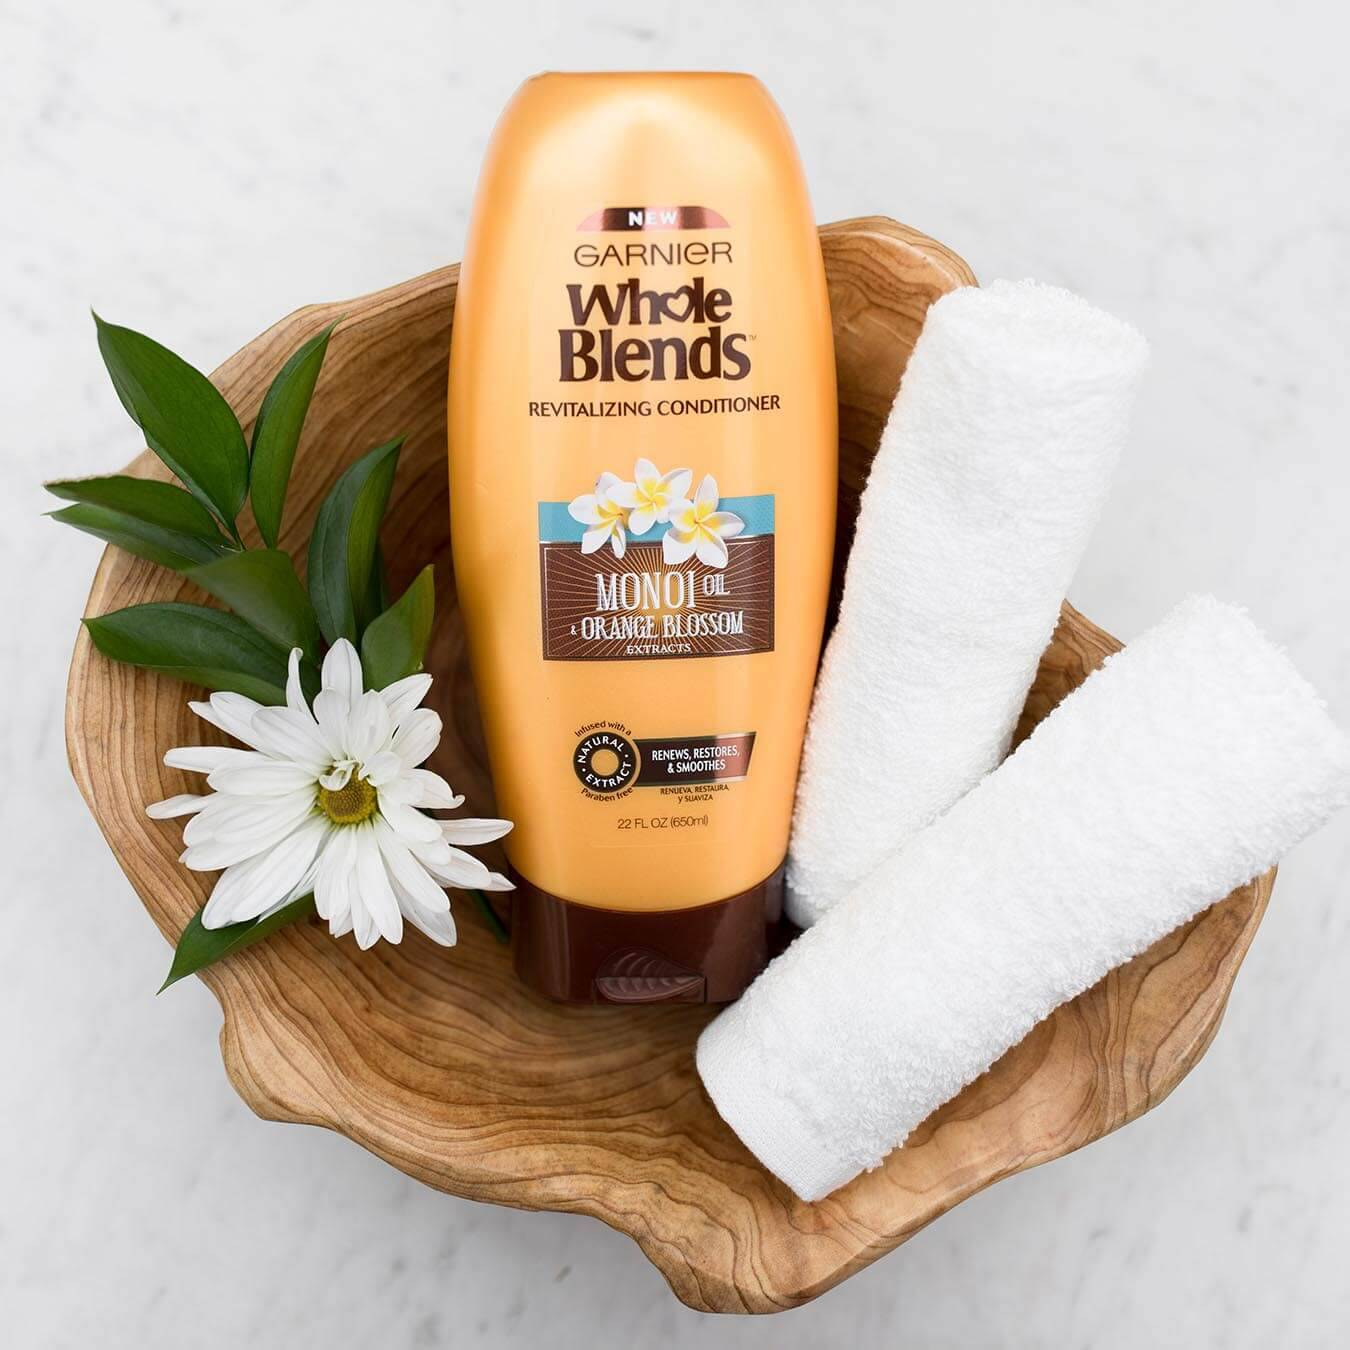 Whole Blends Monoi Oil Conditioner with Orange Blossom Extract in an irregular wooden bowl with a monoi blossom and leaves and two rolled white hand towels on white marble.